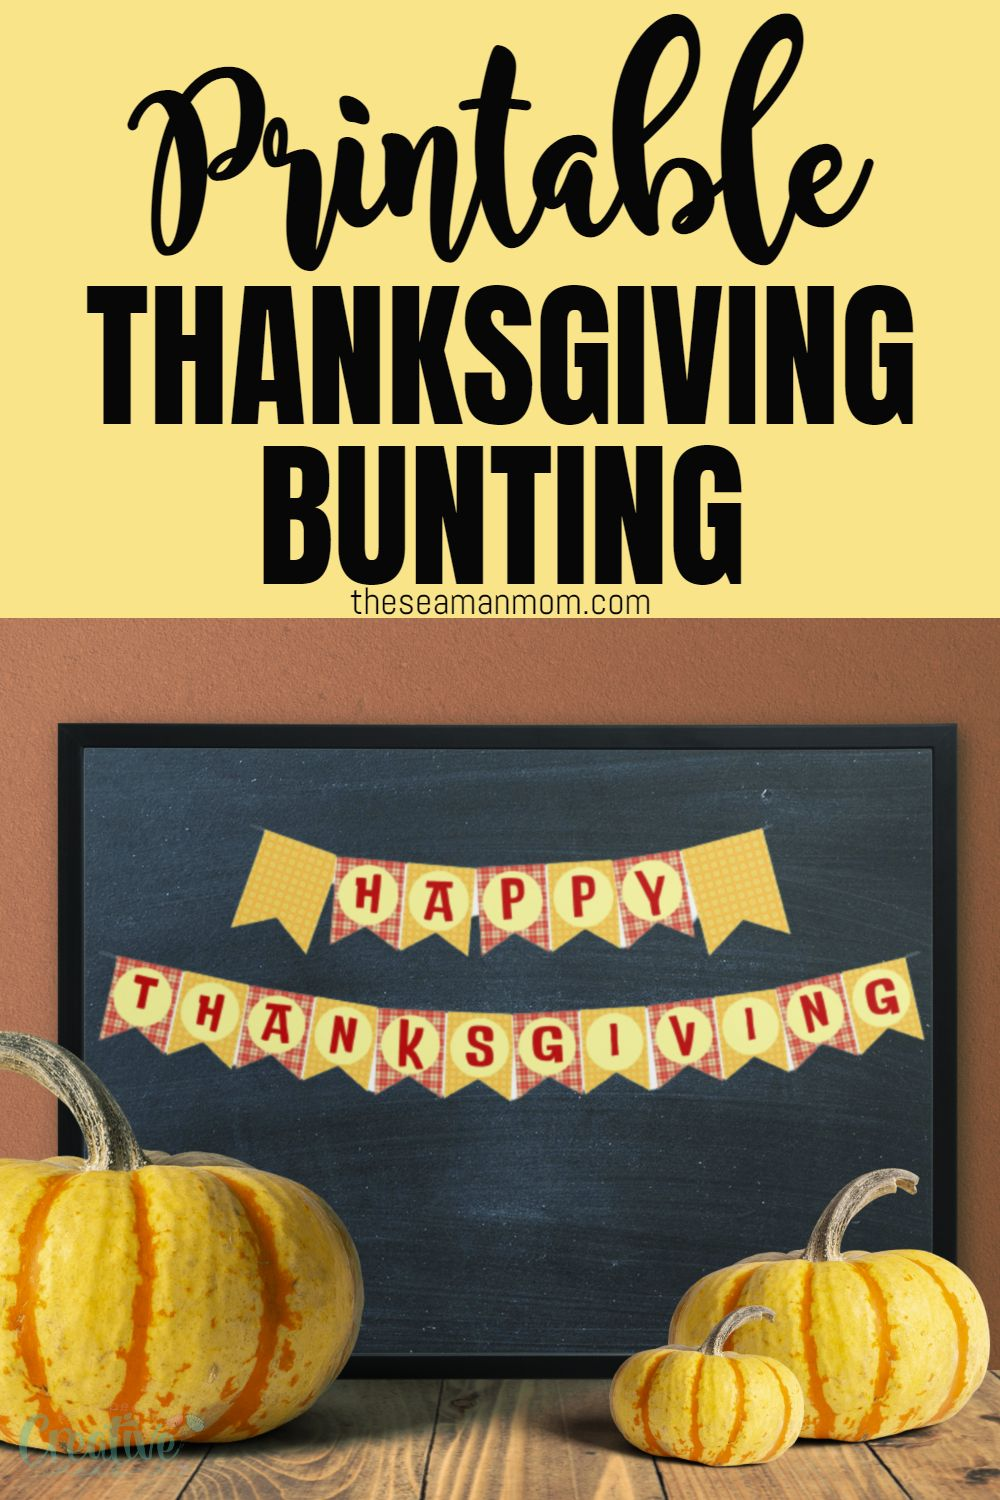 Whether you're hosting friends and family for Thanksgiving dinner or just want to add some fall décor to your home, a Thanksgiving banner is a great option. via @petroneagu